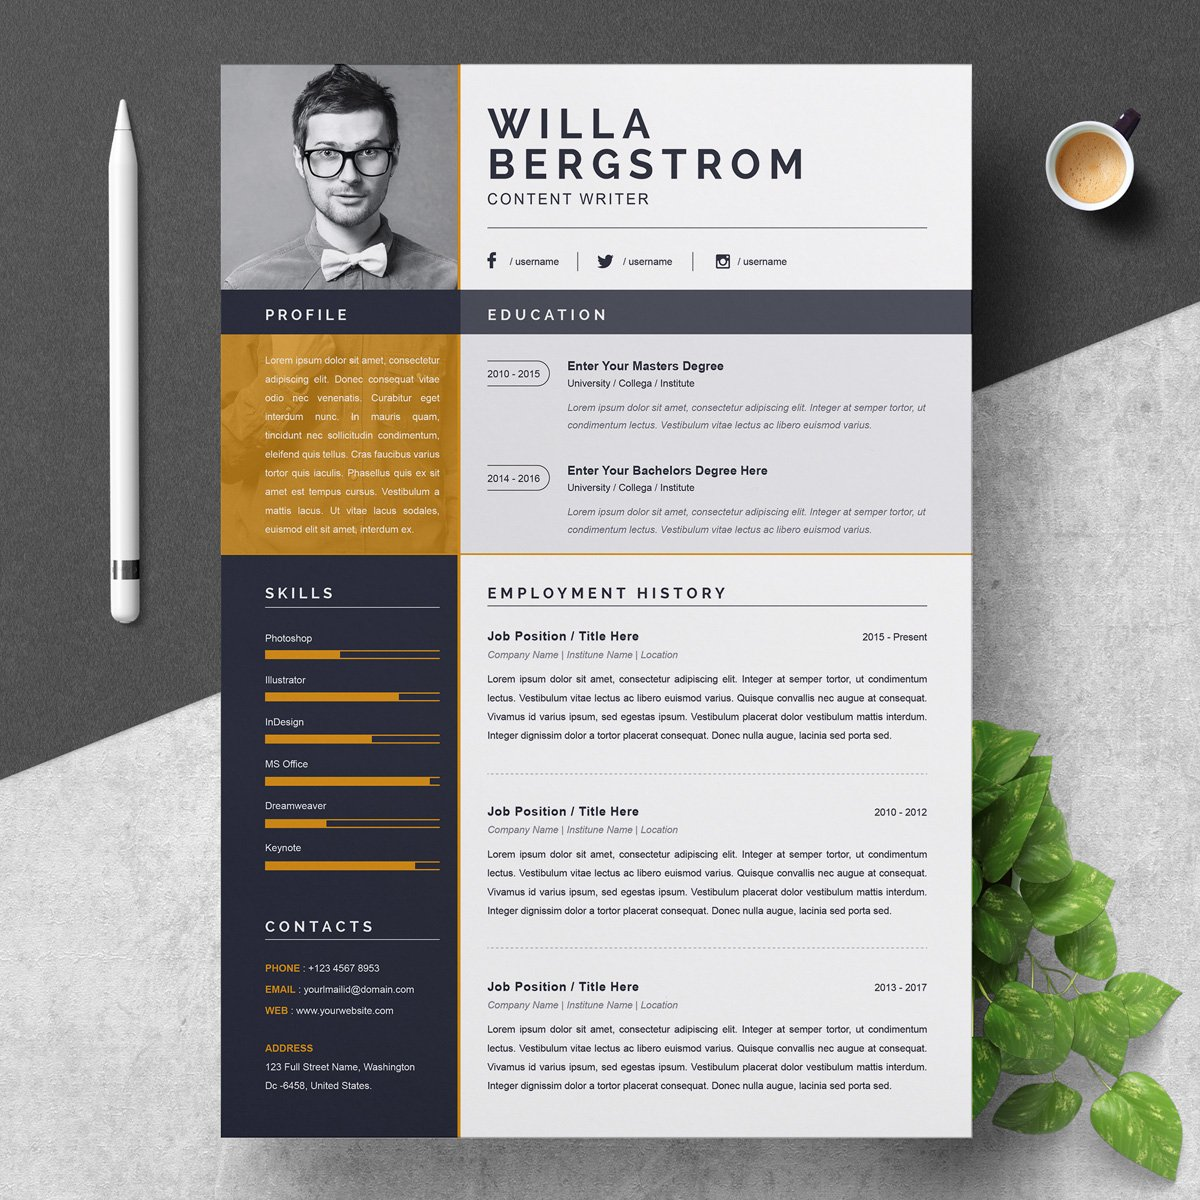 https://s3u.tmimgcdn.com/1860567-1554011321751_01_Clean-Professional-Creative-and-Modern-Resume-CV-Curriculum-Vitae-Design-Template-MS-Word-Apple-Pages-PSD-Free-Download.jpg